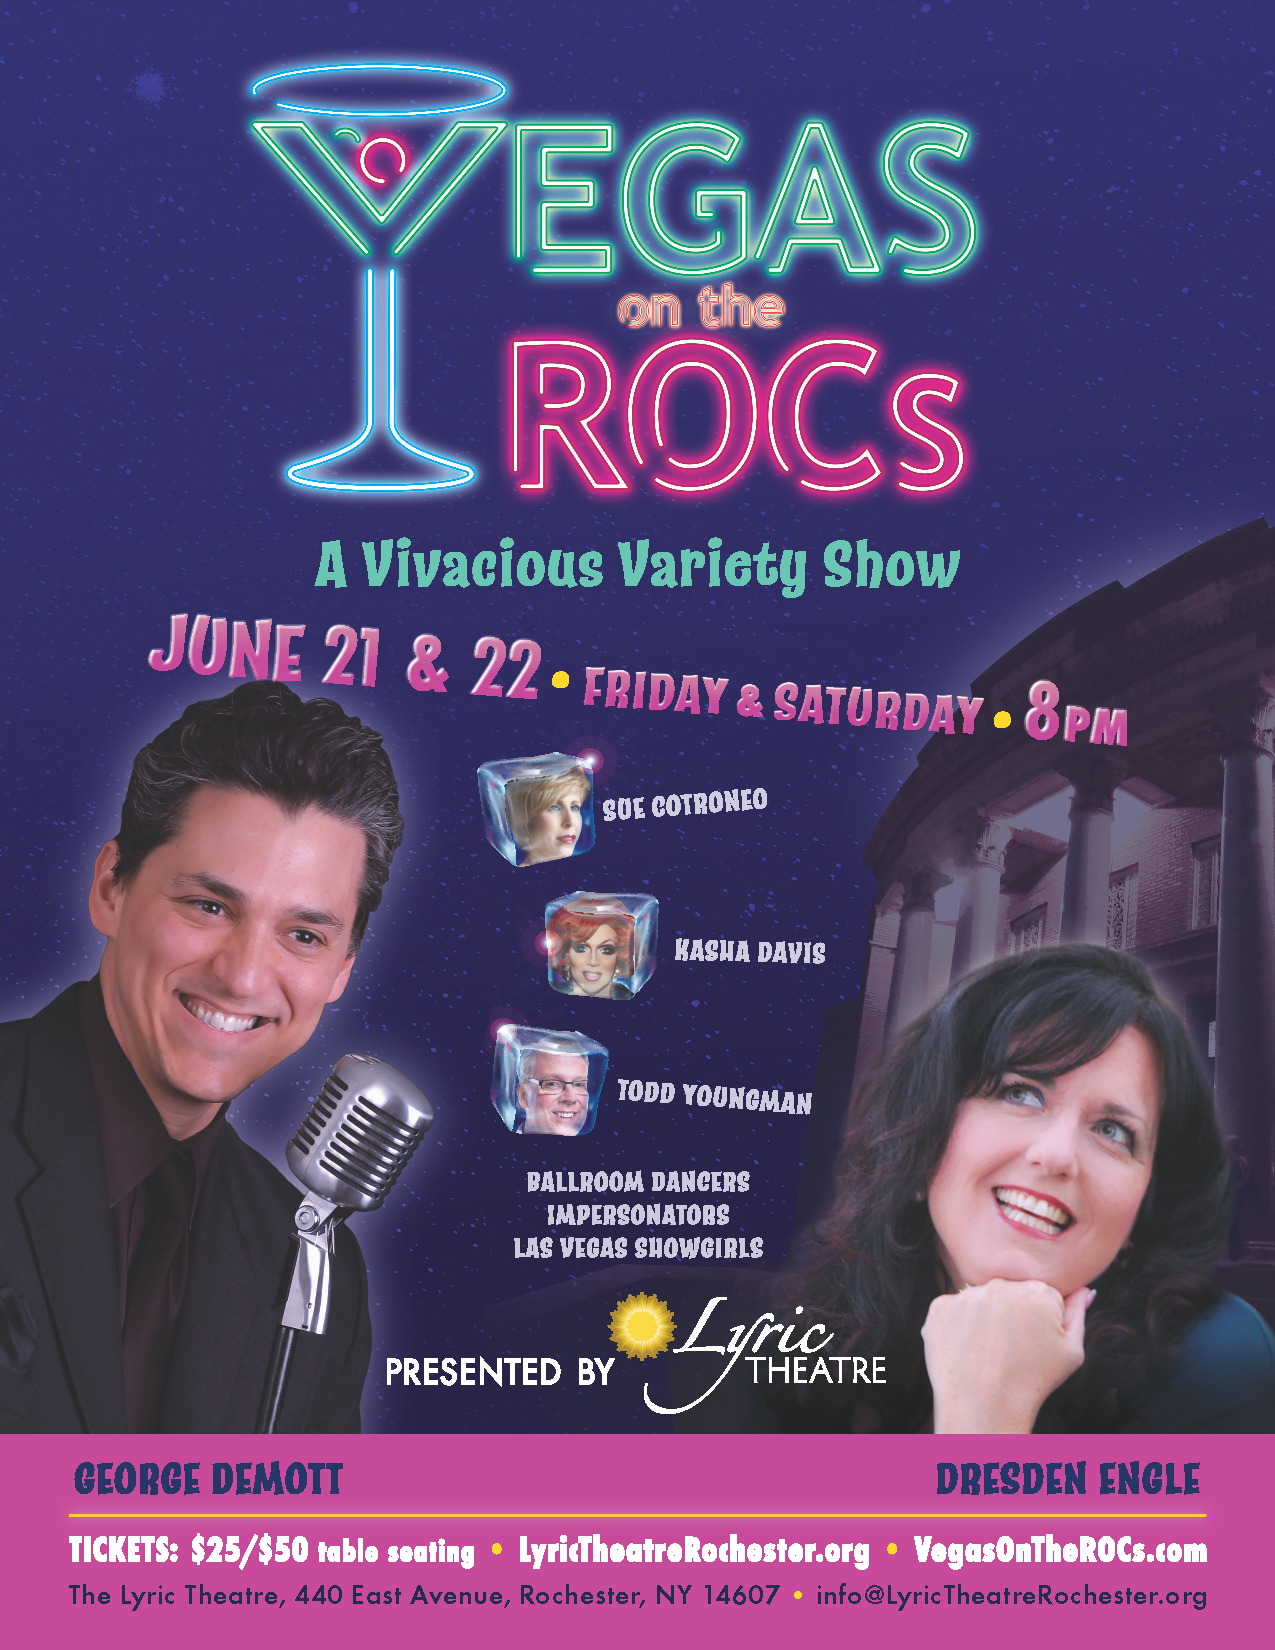 Vegas on the rocs flyer-8_5X11.png